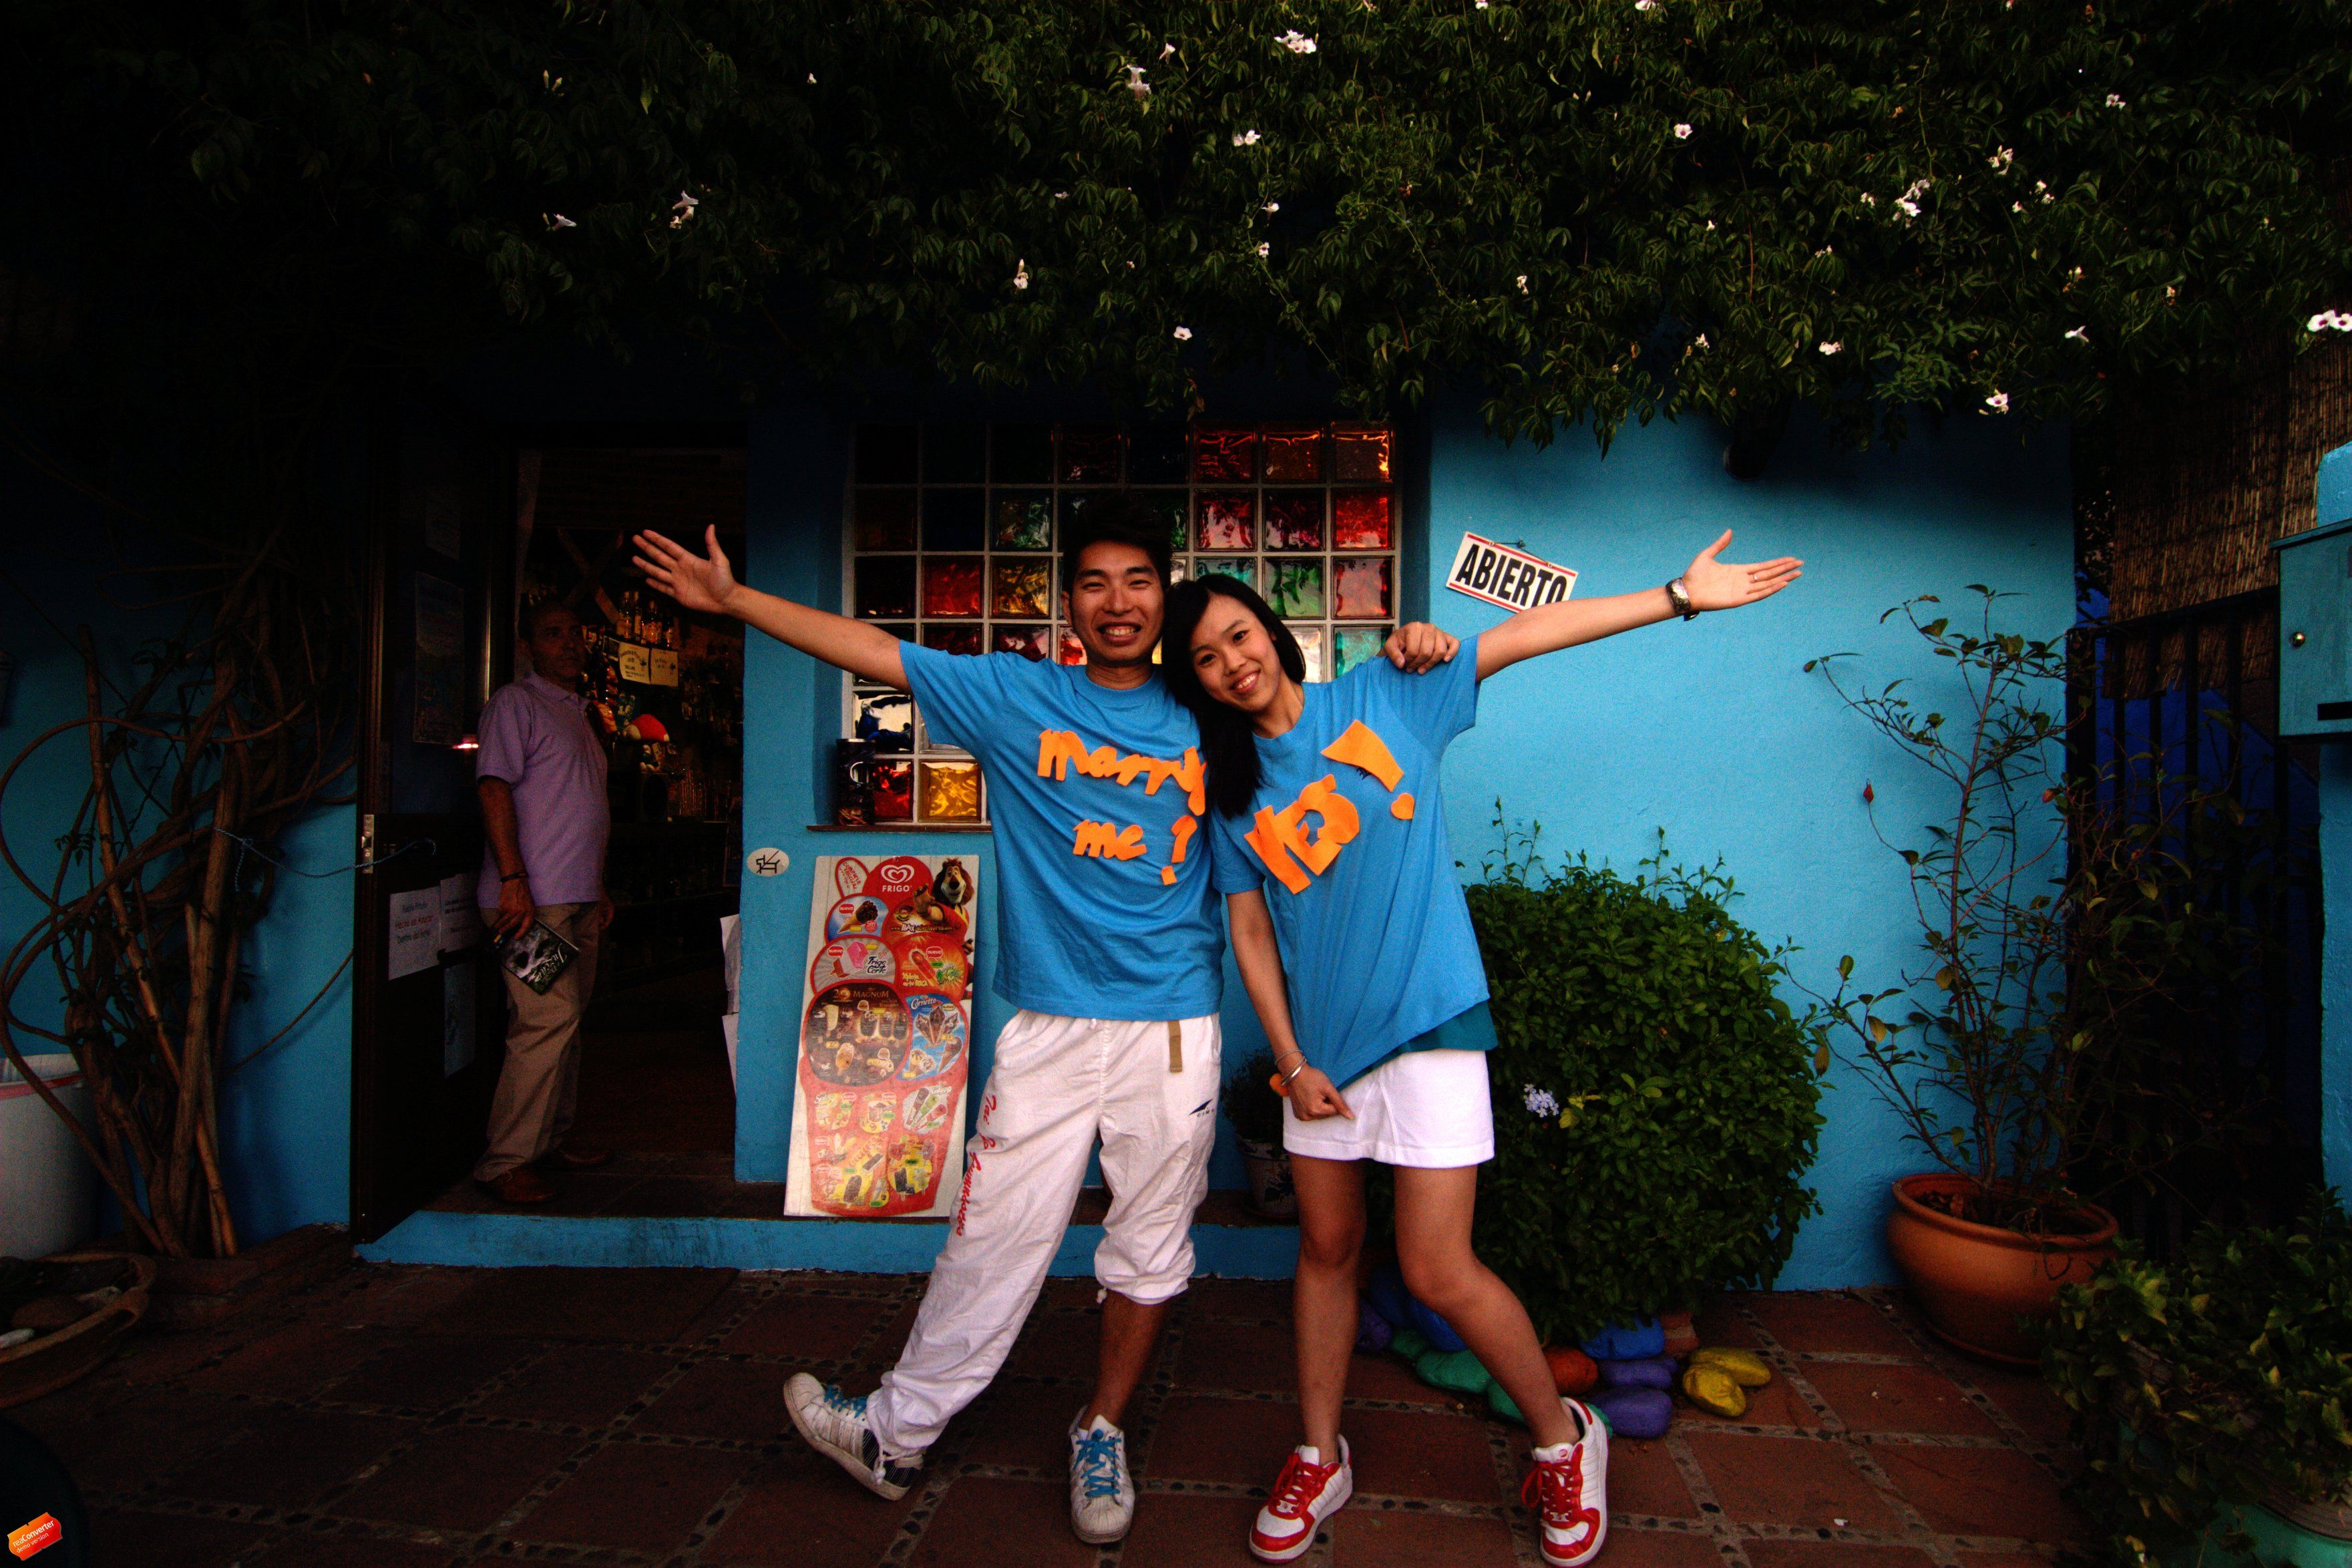 We, fans of Smurf visit the hometown of Smurf - Juzcar, Malaga in August 6, it's not easy to reach, we nearly can't reach there...as we don't know Spanish, by our english and universal body language, we finally reach there and see those beautiful blue house ! we love there so much, just wanna share our happiness to those who loves Smurf ! Enjoy!